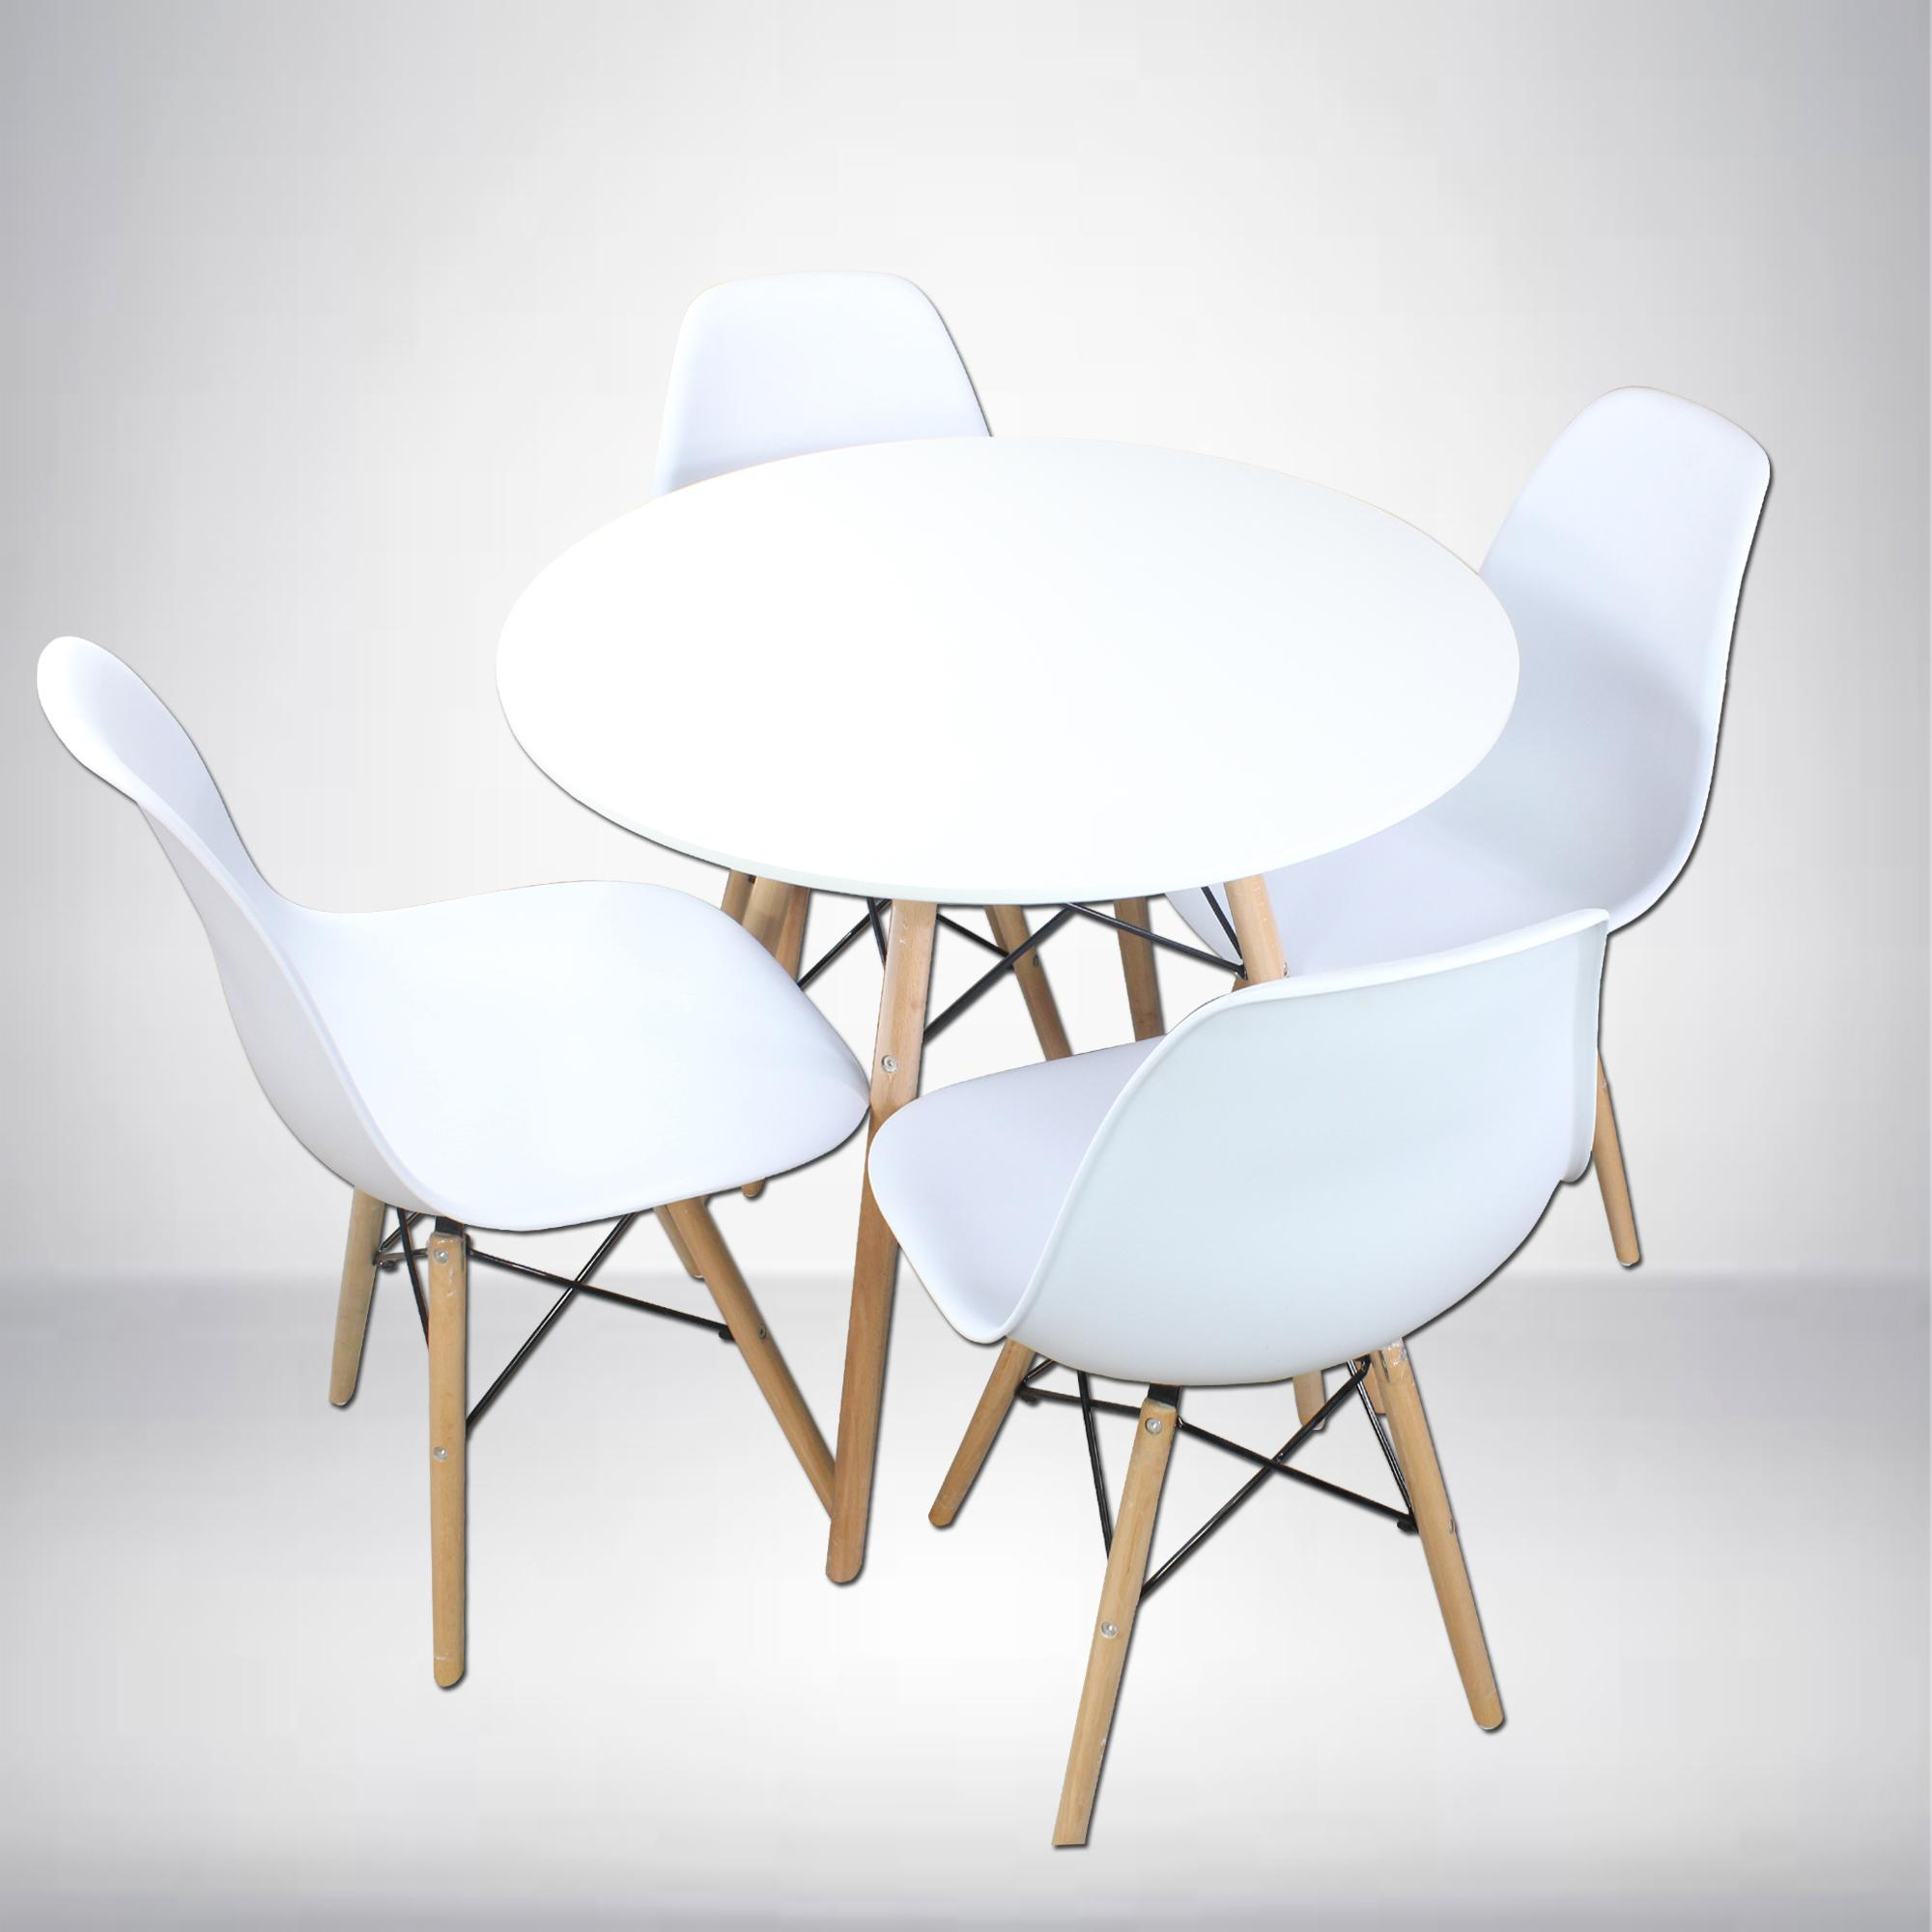 A9B 9pc Round Dining Table and A-9 9pcs Dining Chair Dining Set